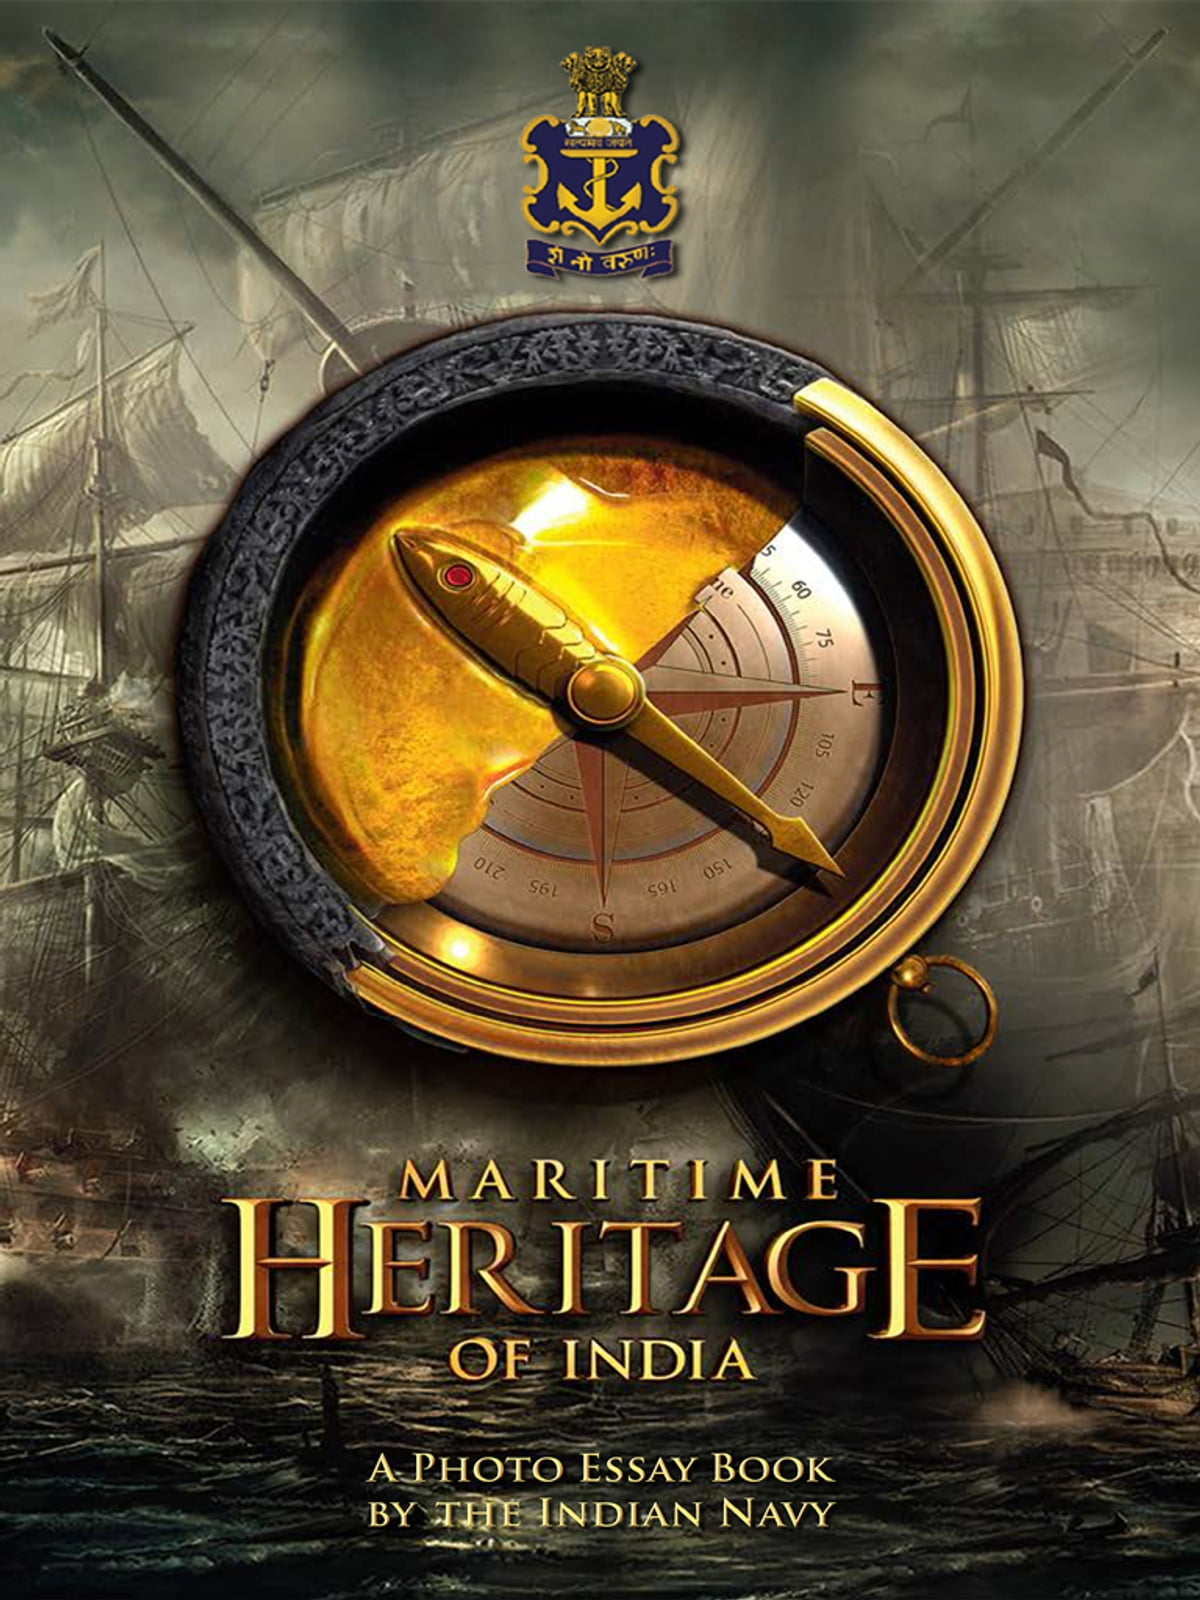 maritime heritage of ebook by n navy 9789352069170